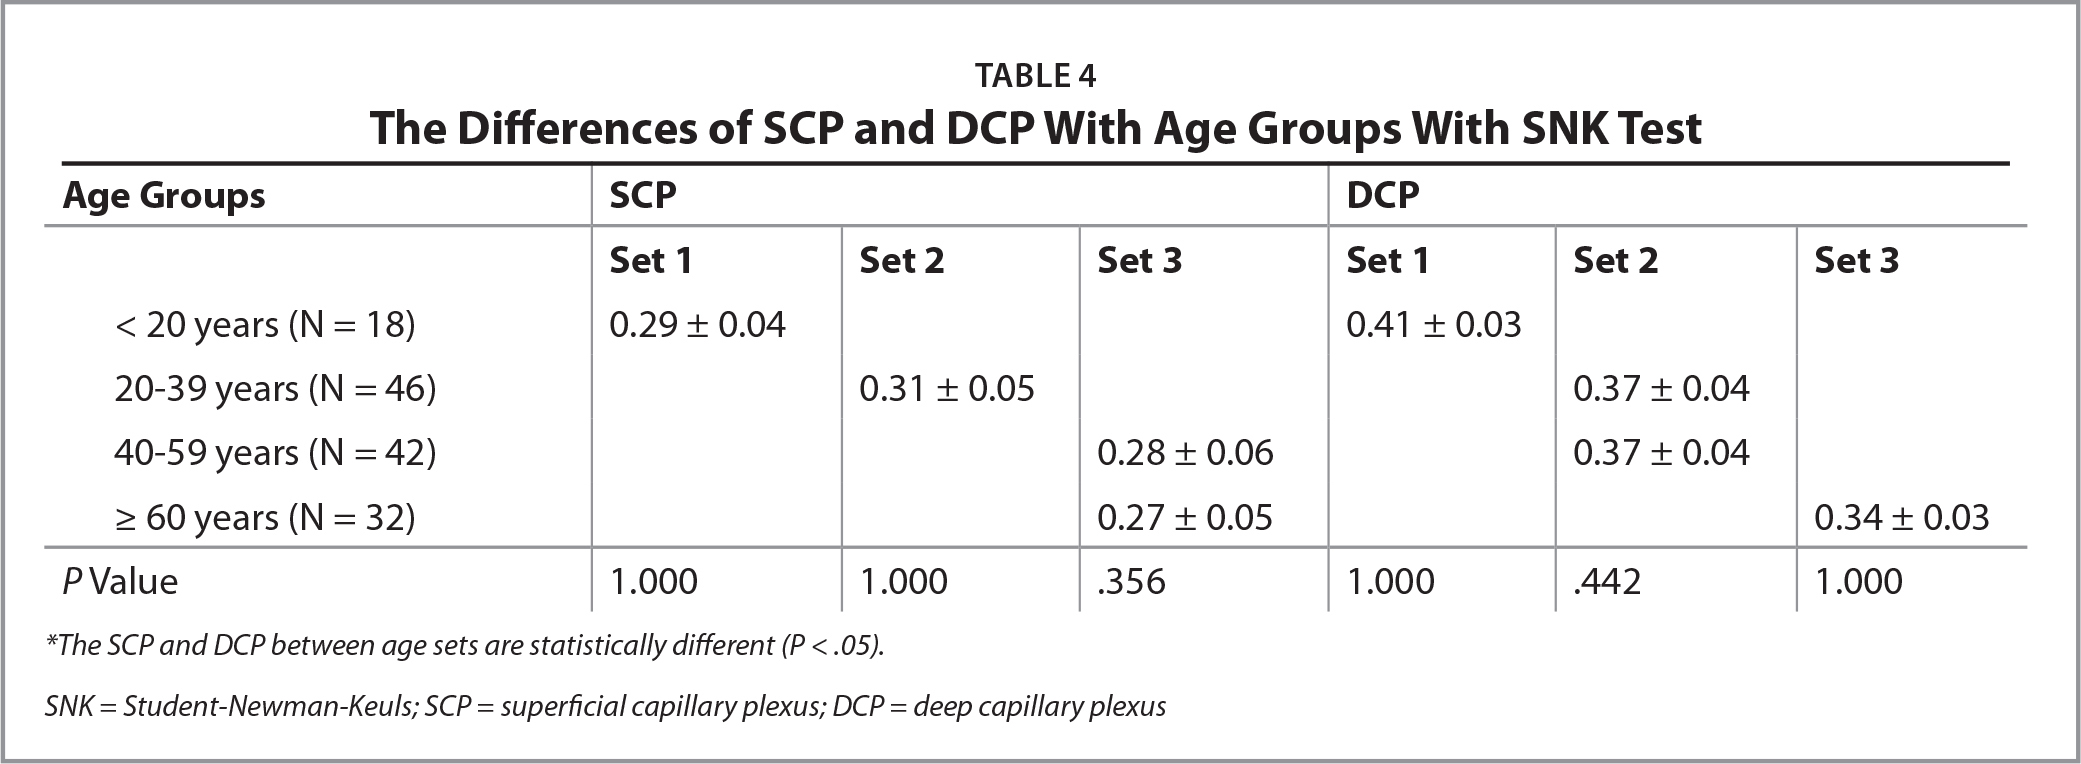 The Differences of SCP and DCP With Age Groups With SNK Test